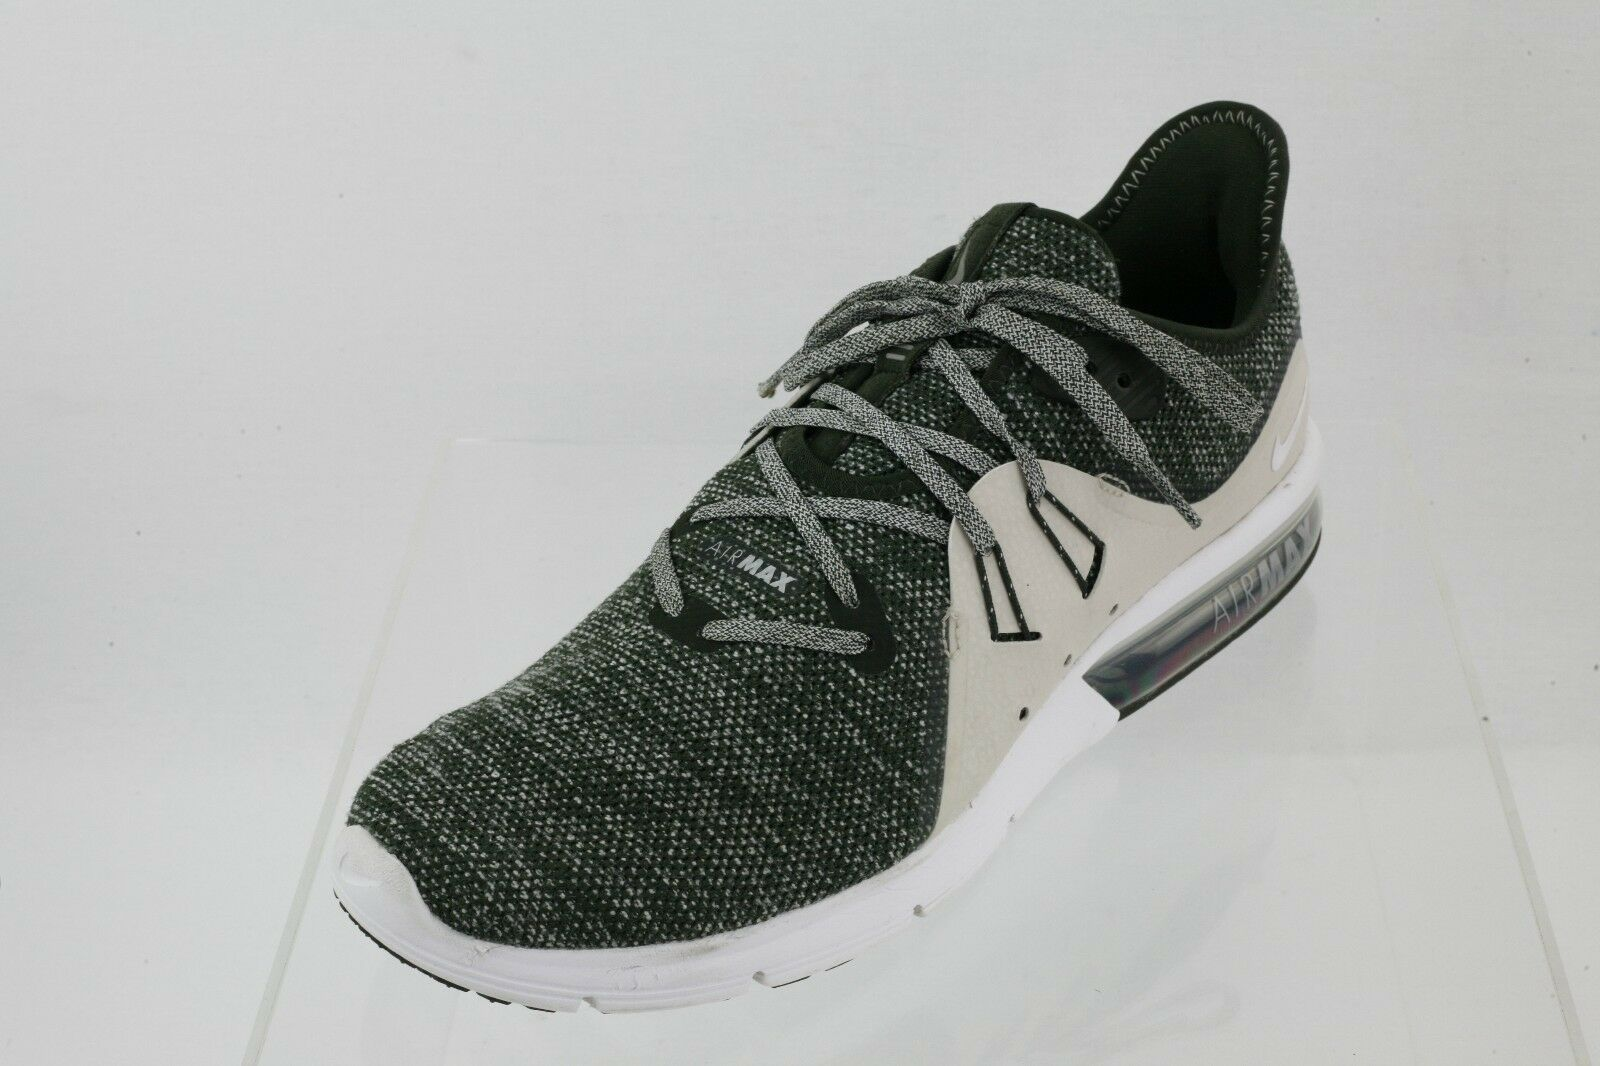 Men's Nike 921694-300 Air Max Sequent 3 Grey Lace-up Running Shoes Size 11 M